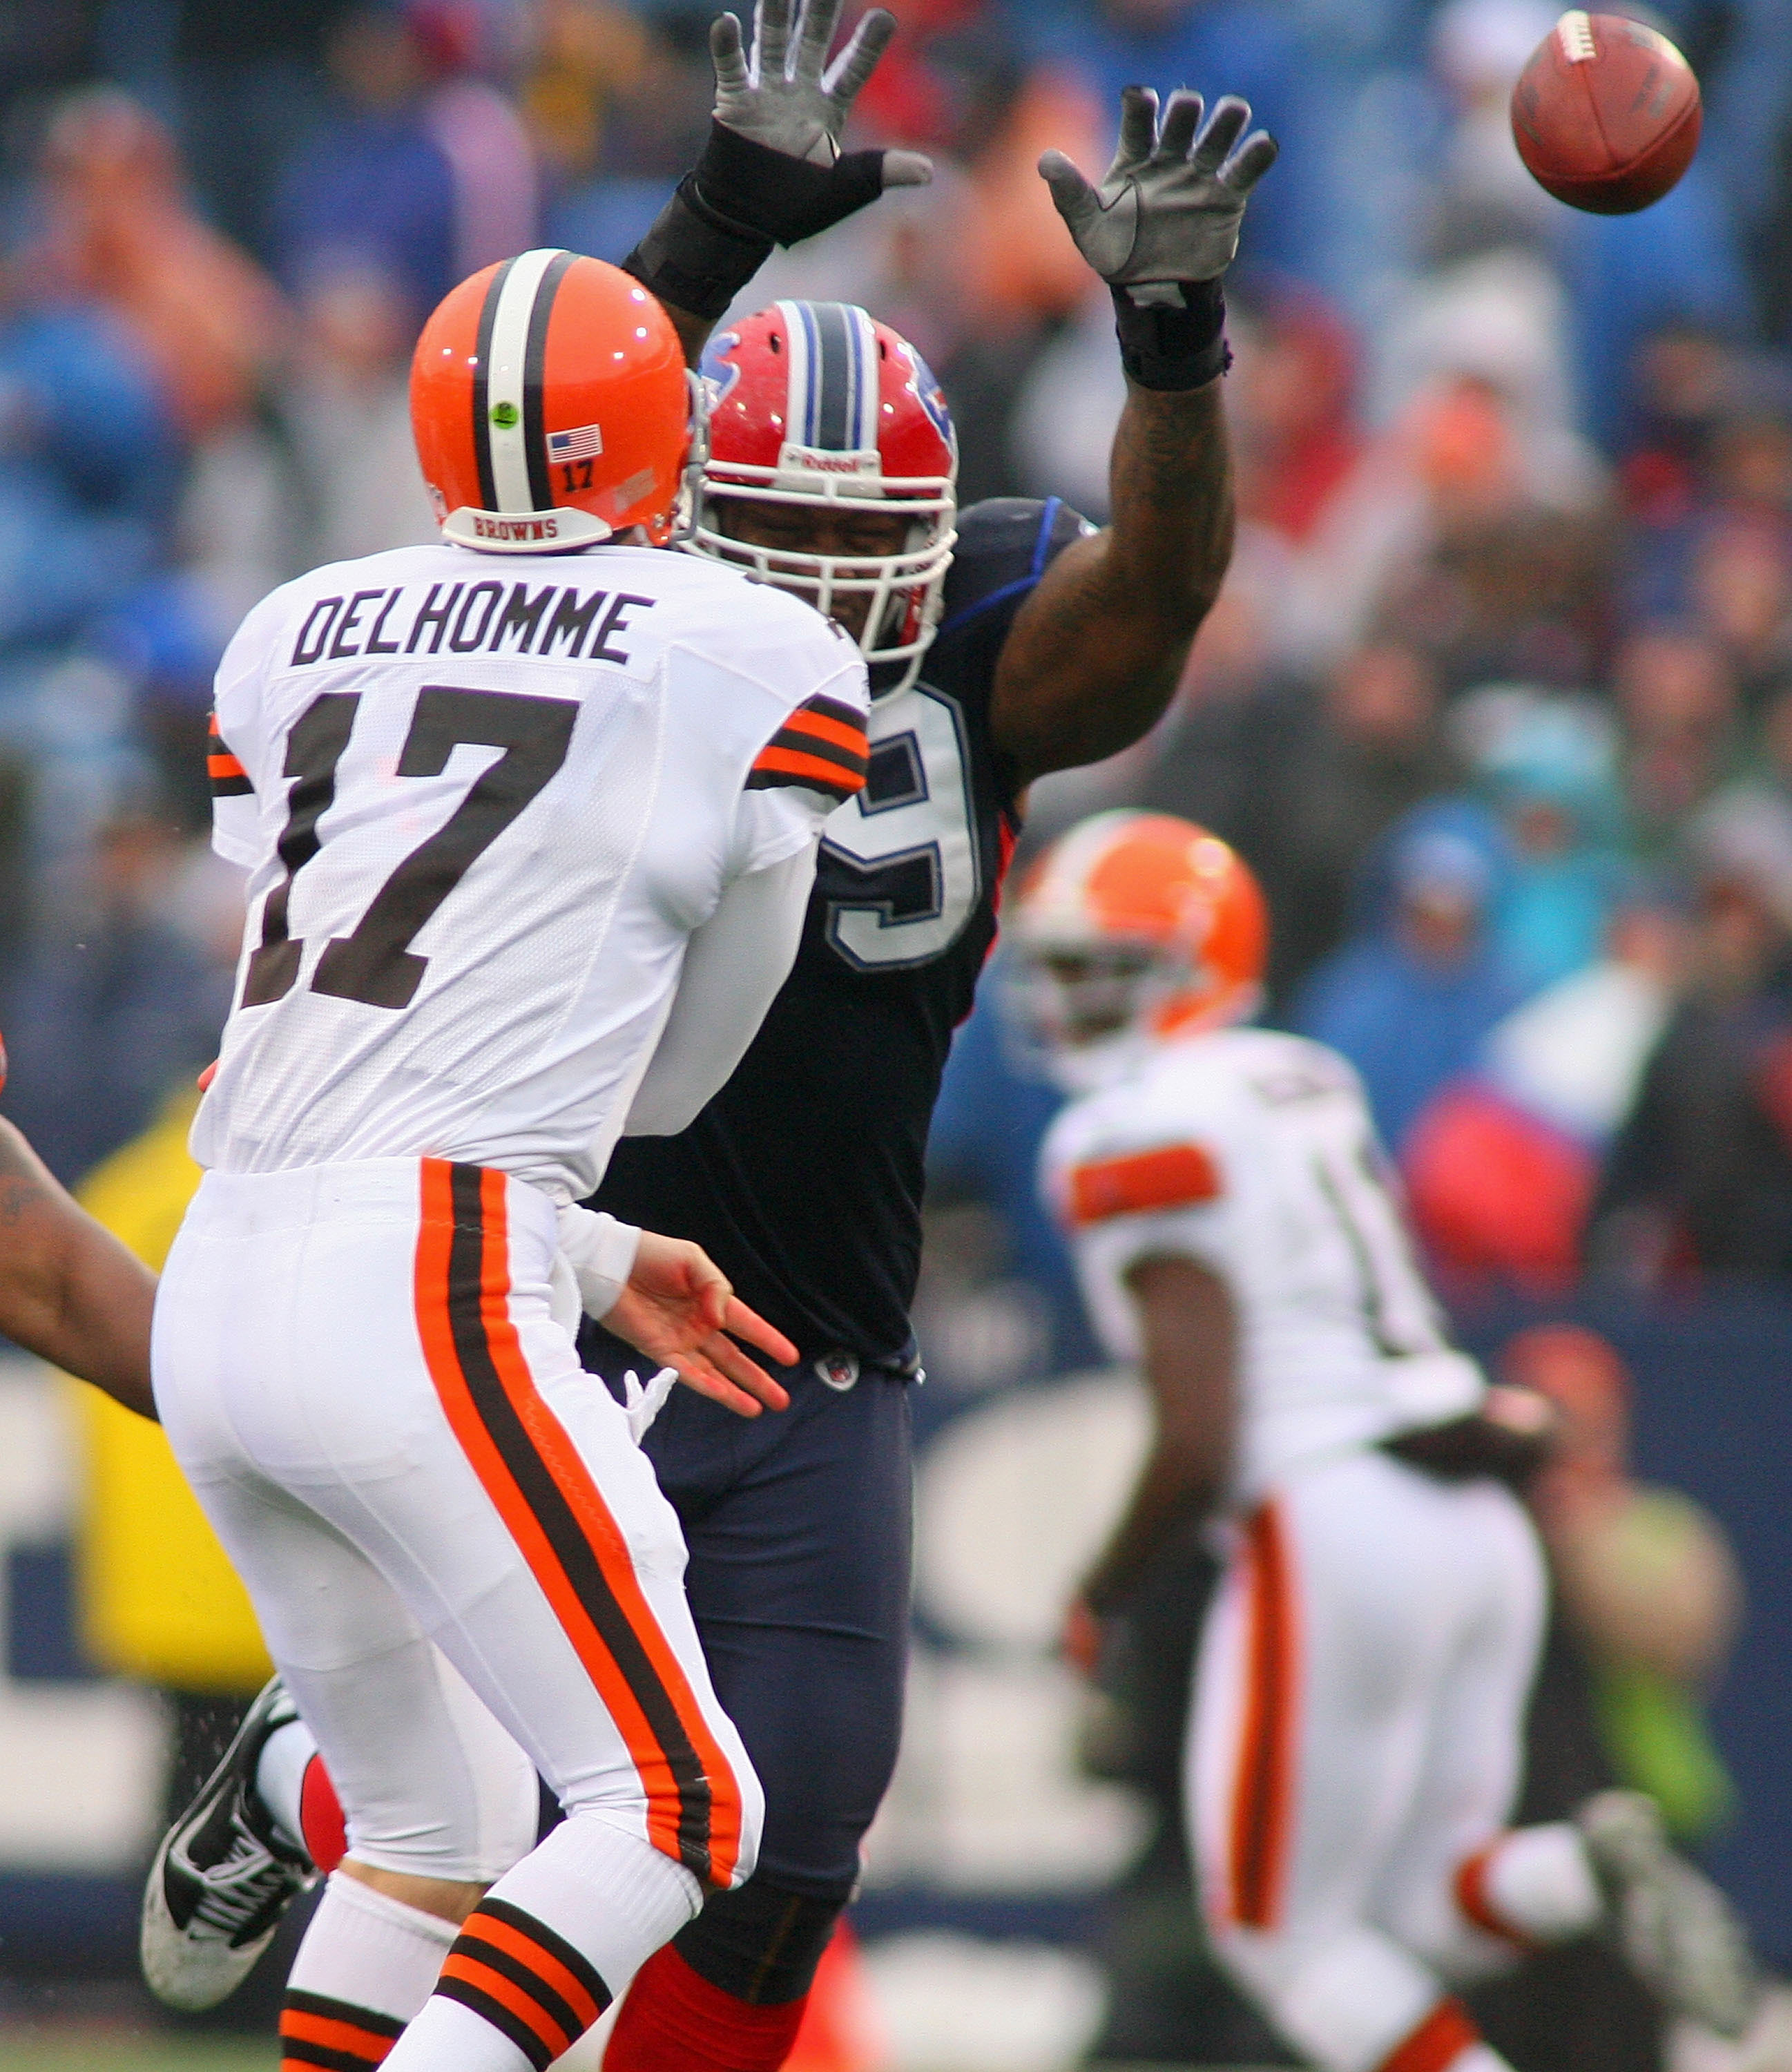 ORCHARD PARK, NY - DECEMBER 12:  Jake Delhomme #17 of the Cleveland Browns throws a pass with pressure from Marcus Stroud #99 of the Buffalo Bills  at Ralph Wilson Stadium on December 12, 2010 in Orchard Park, New York.  (Photo by Rick Stewart/Getty Image